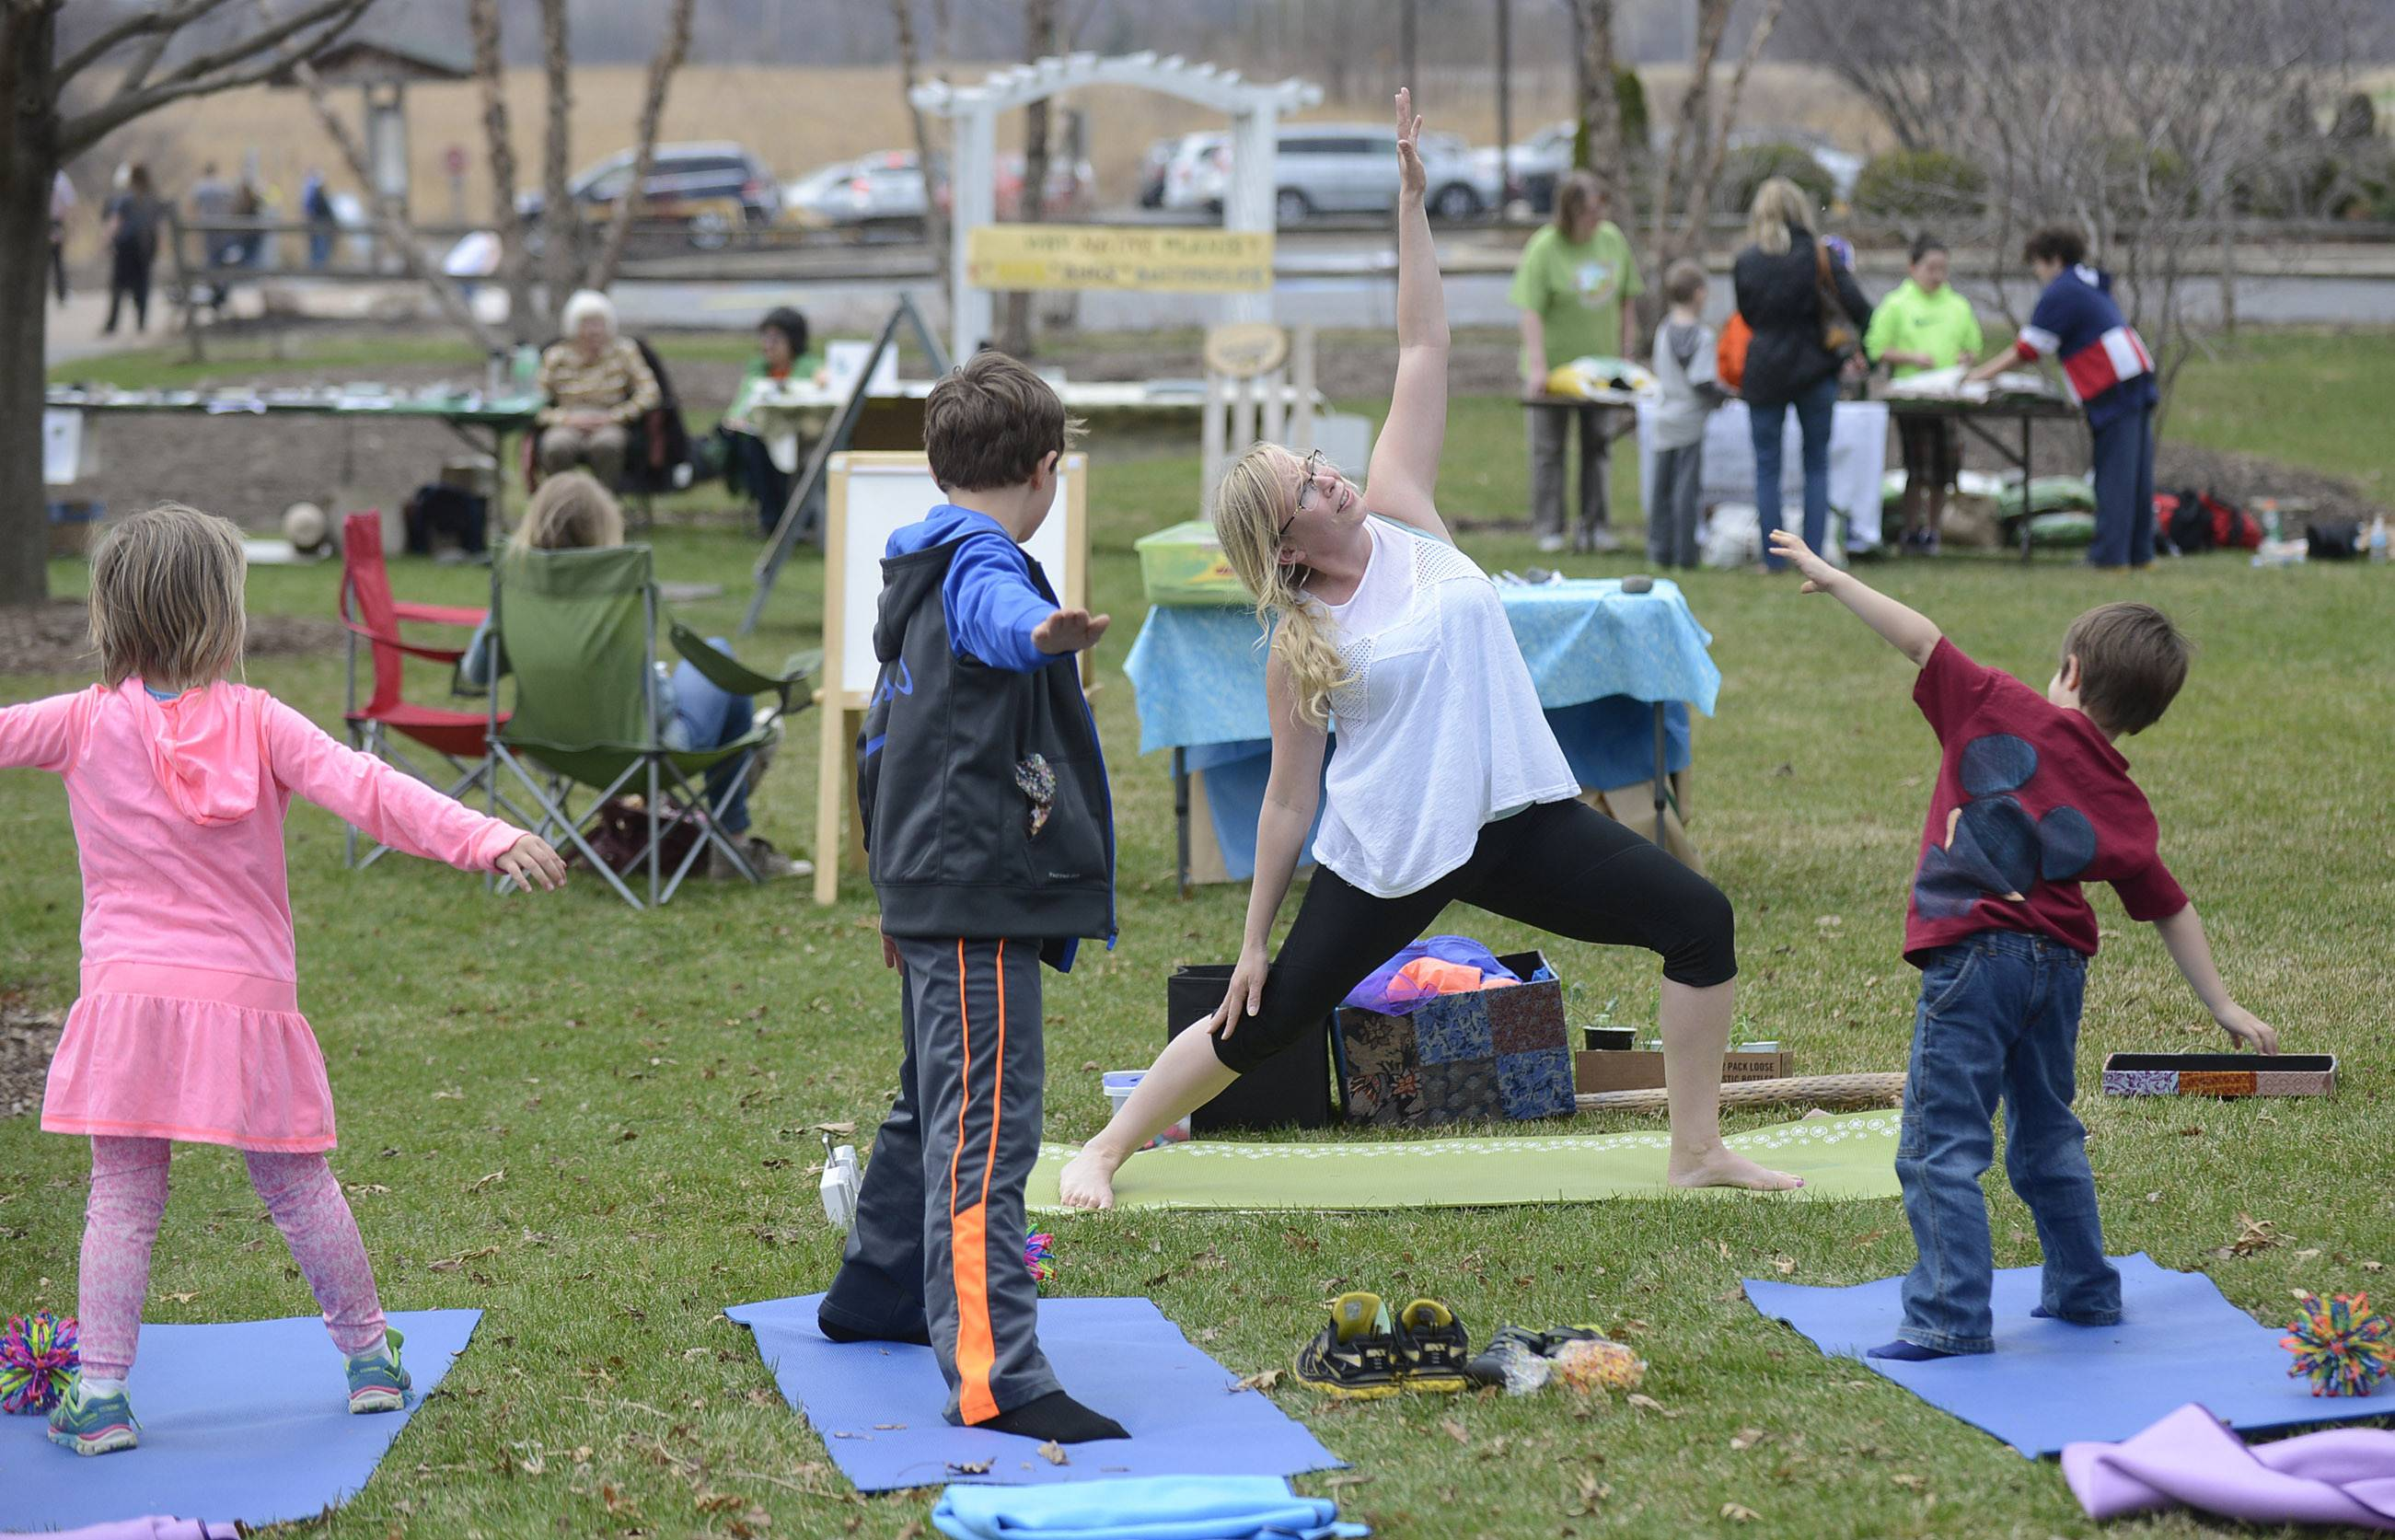 Shelley Ost, owner of Karma Yoga Child of Geneva, takes children through yoga poses Saturday at Peck Farm Park's Earth Day in Geneva.